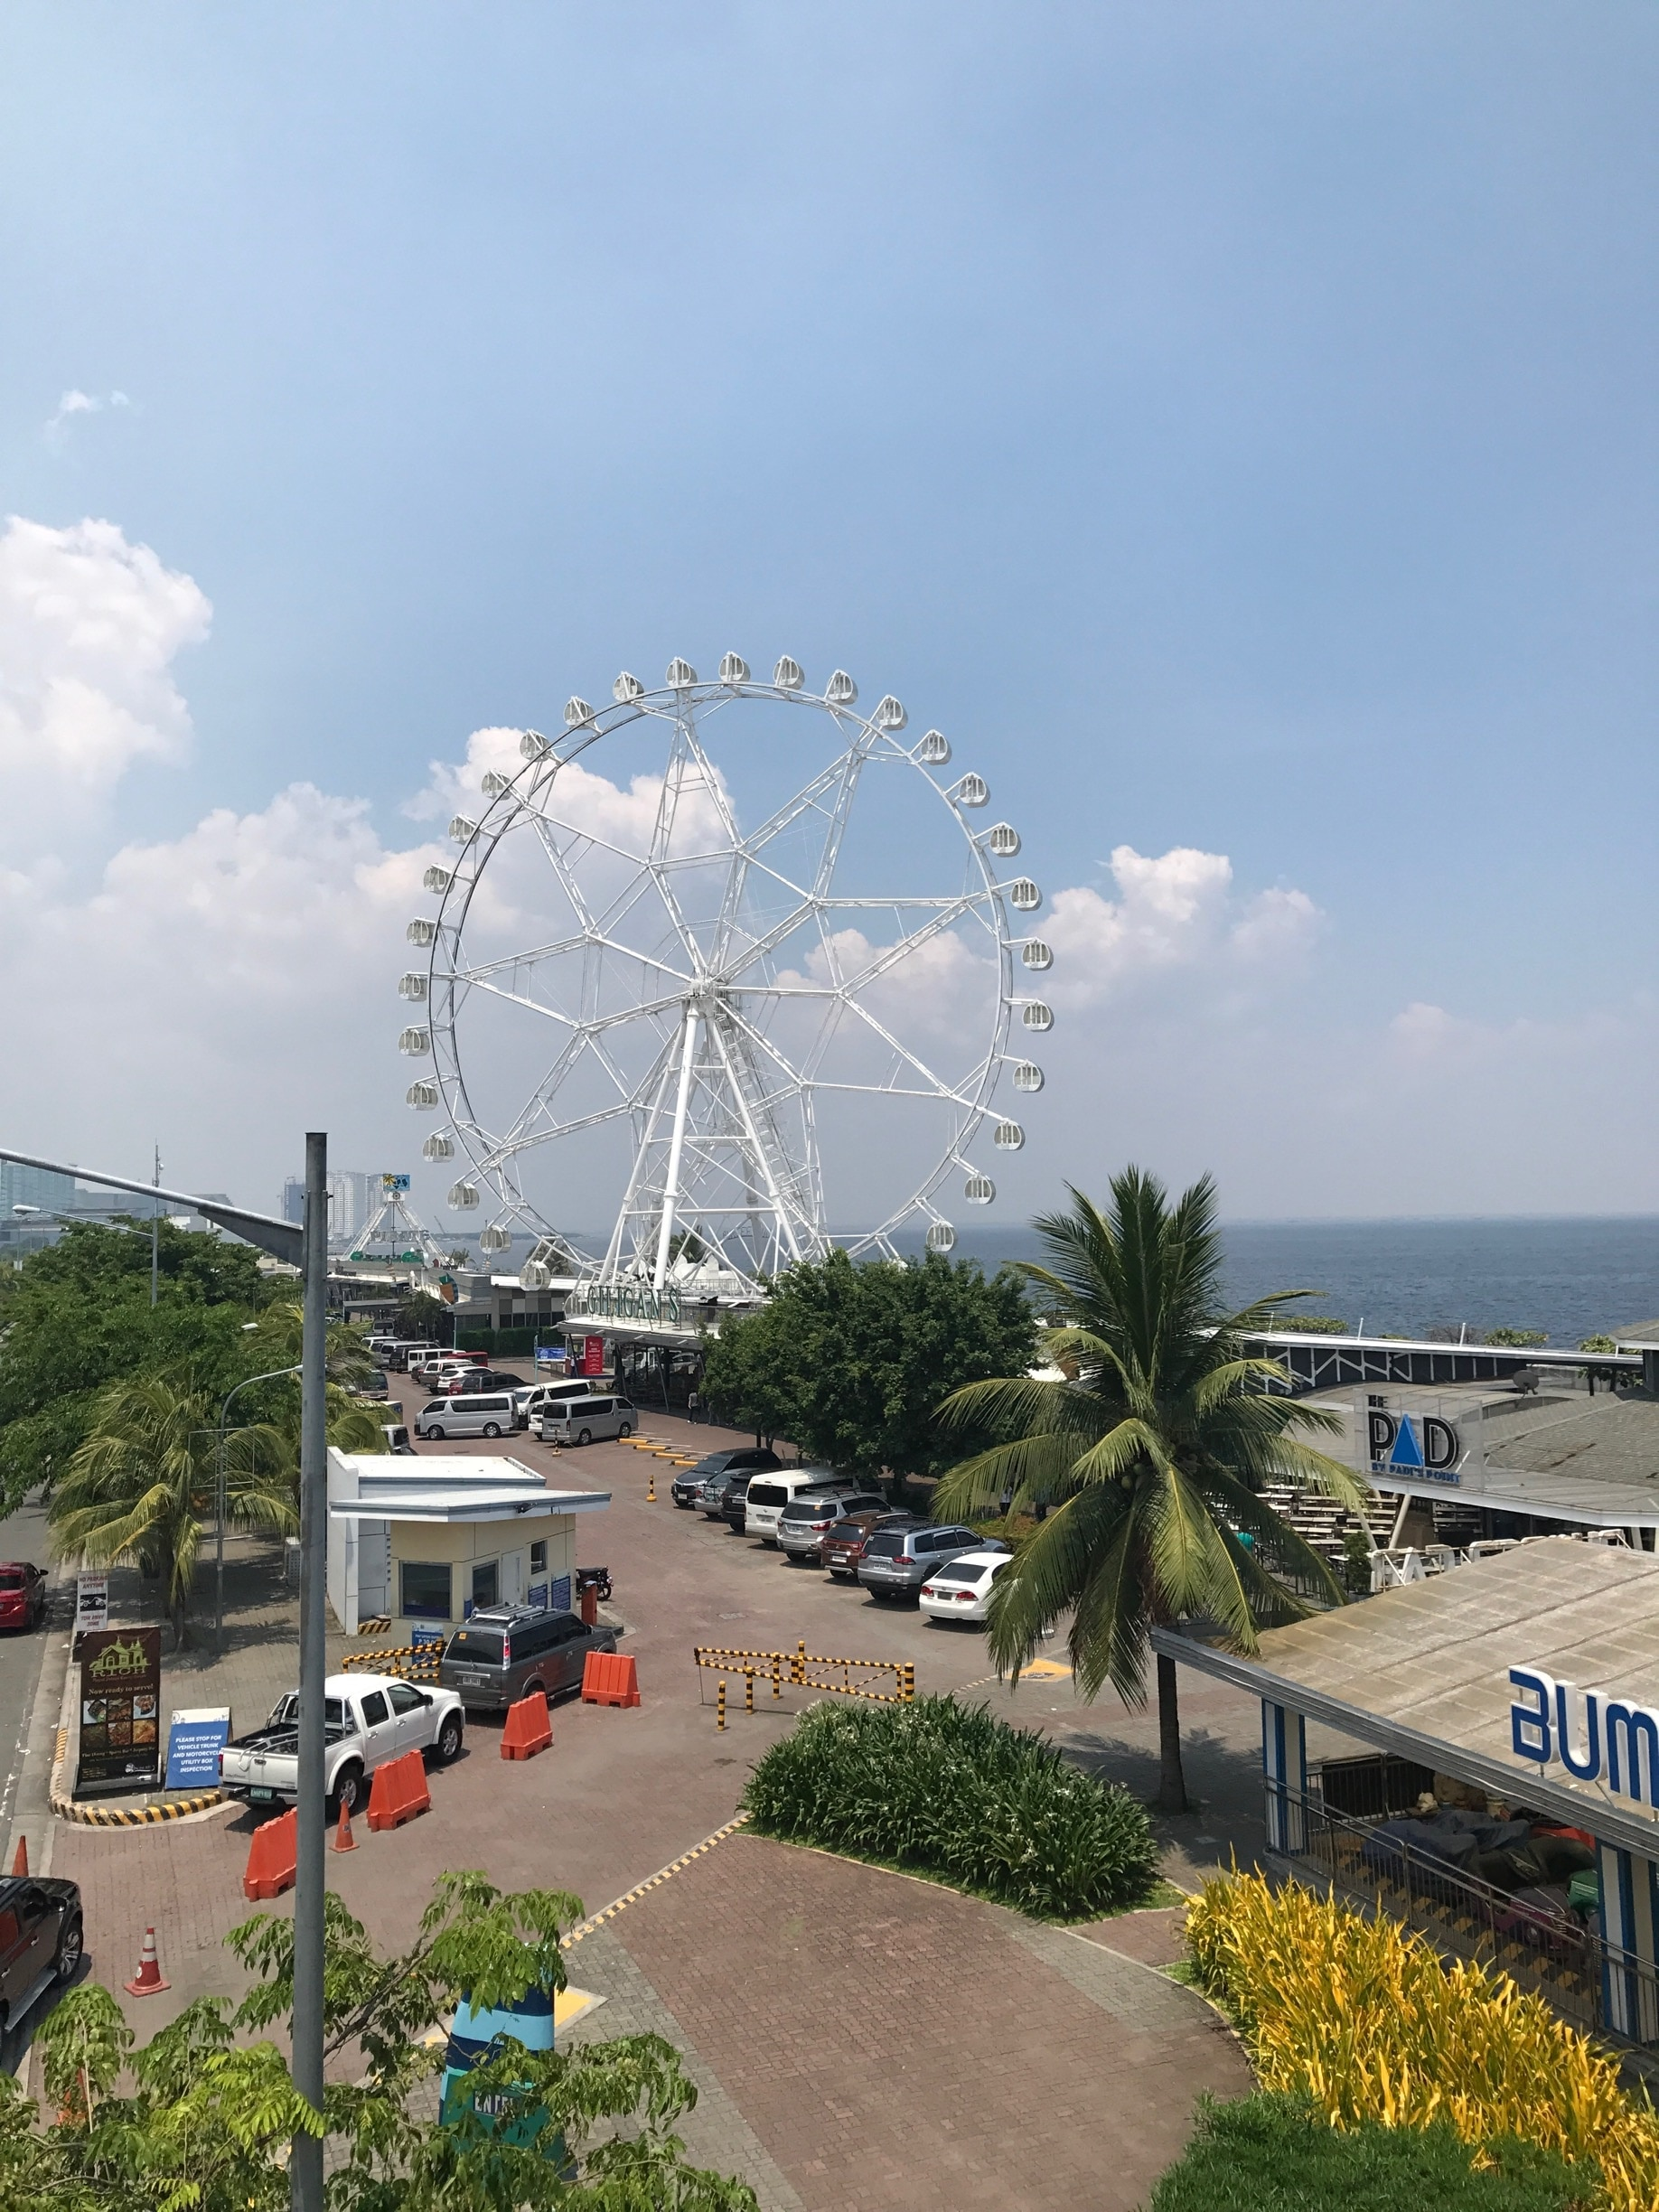 SM Mall of Asia, Pasay, National Capital Region, Philippinen